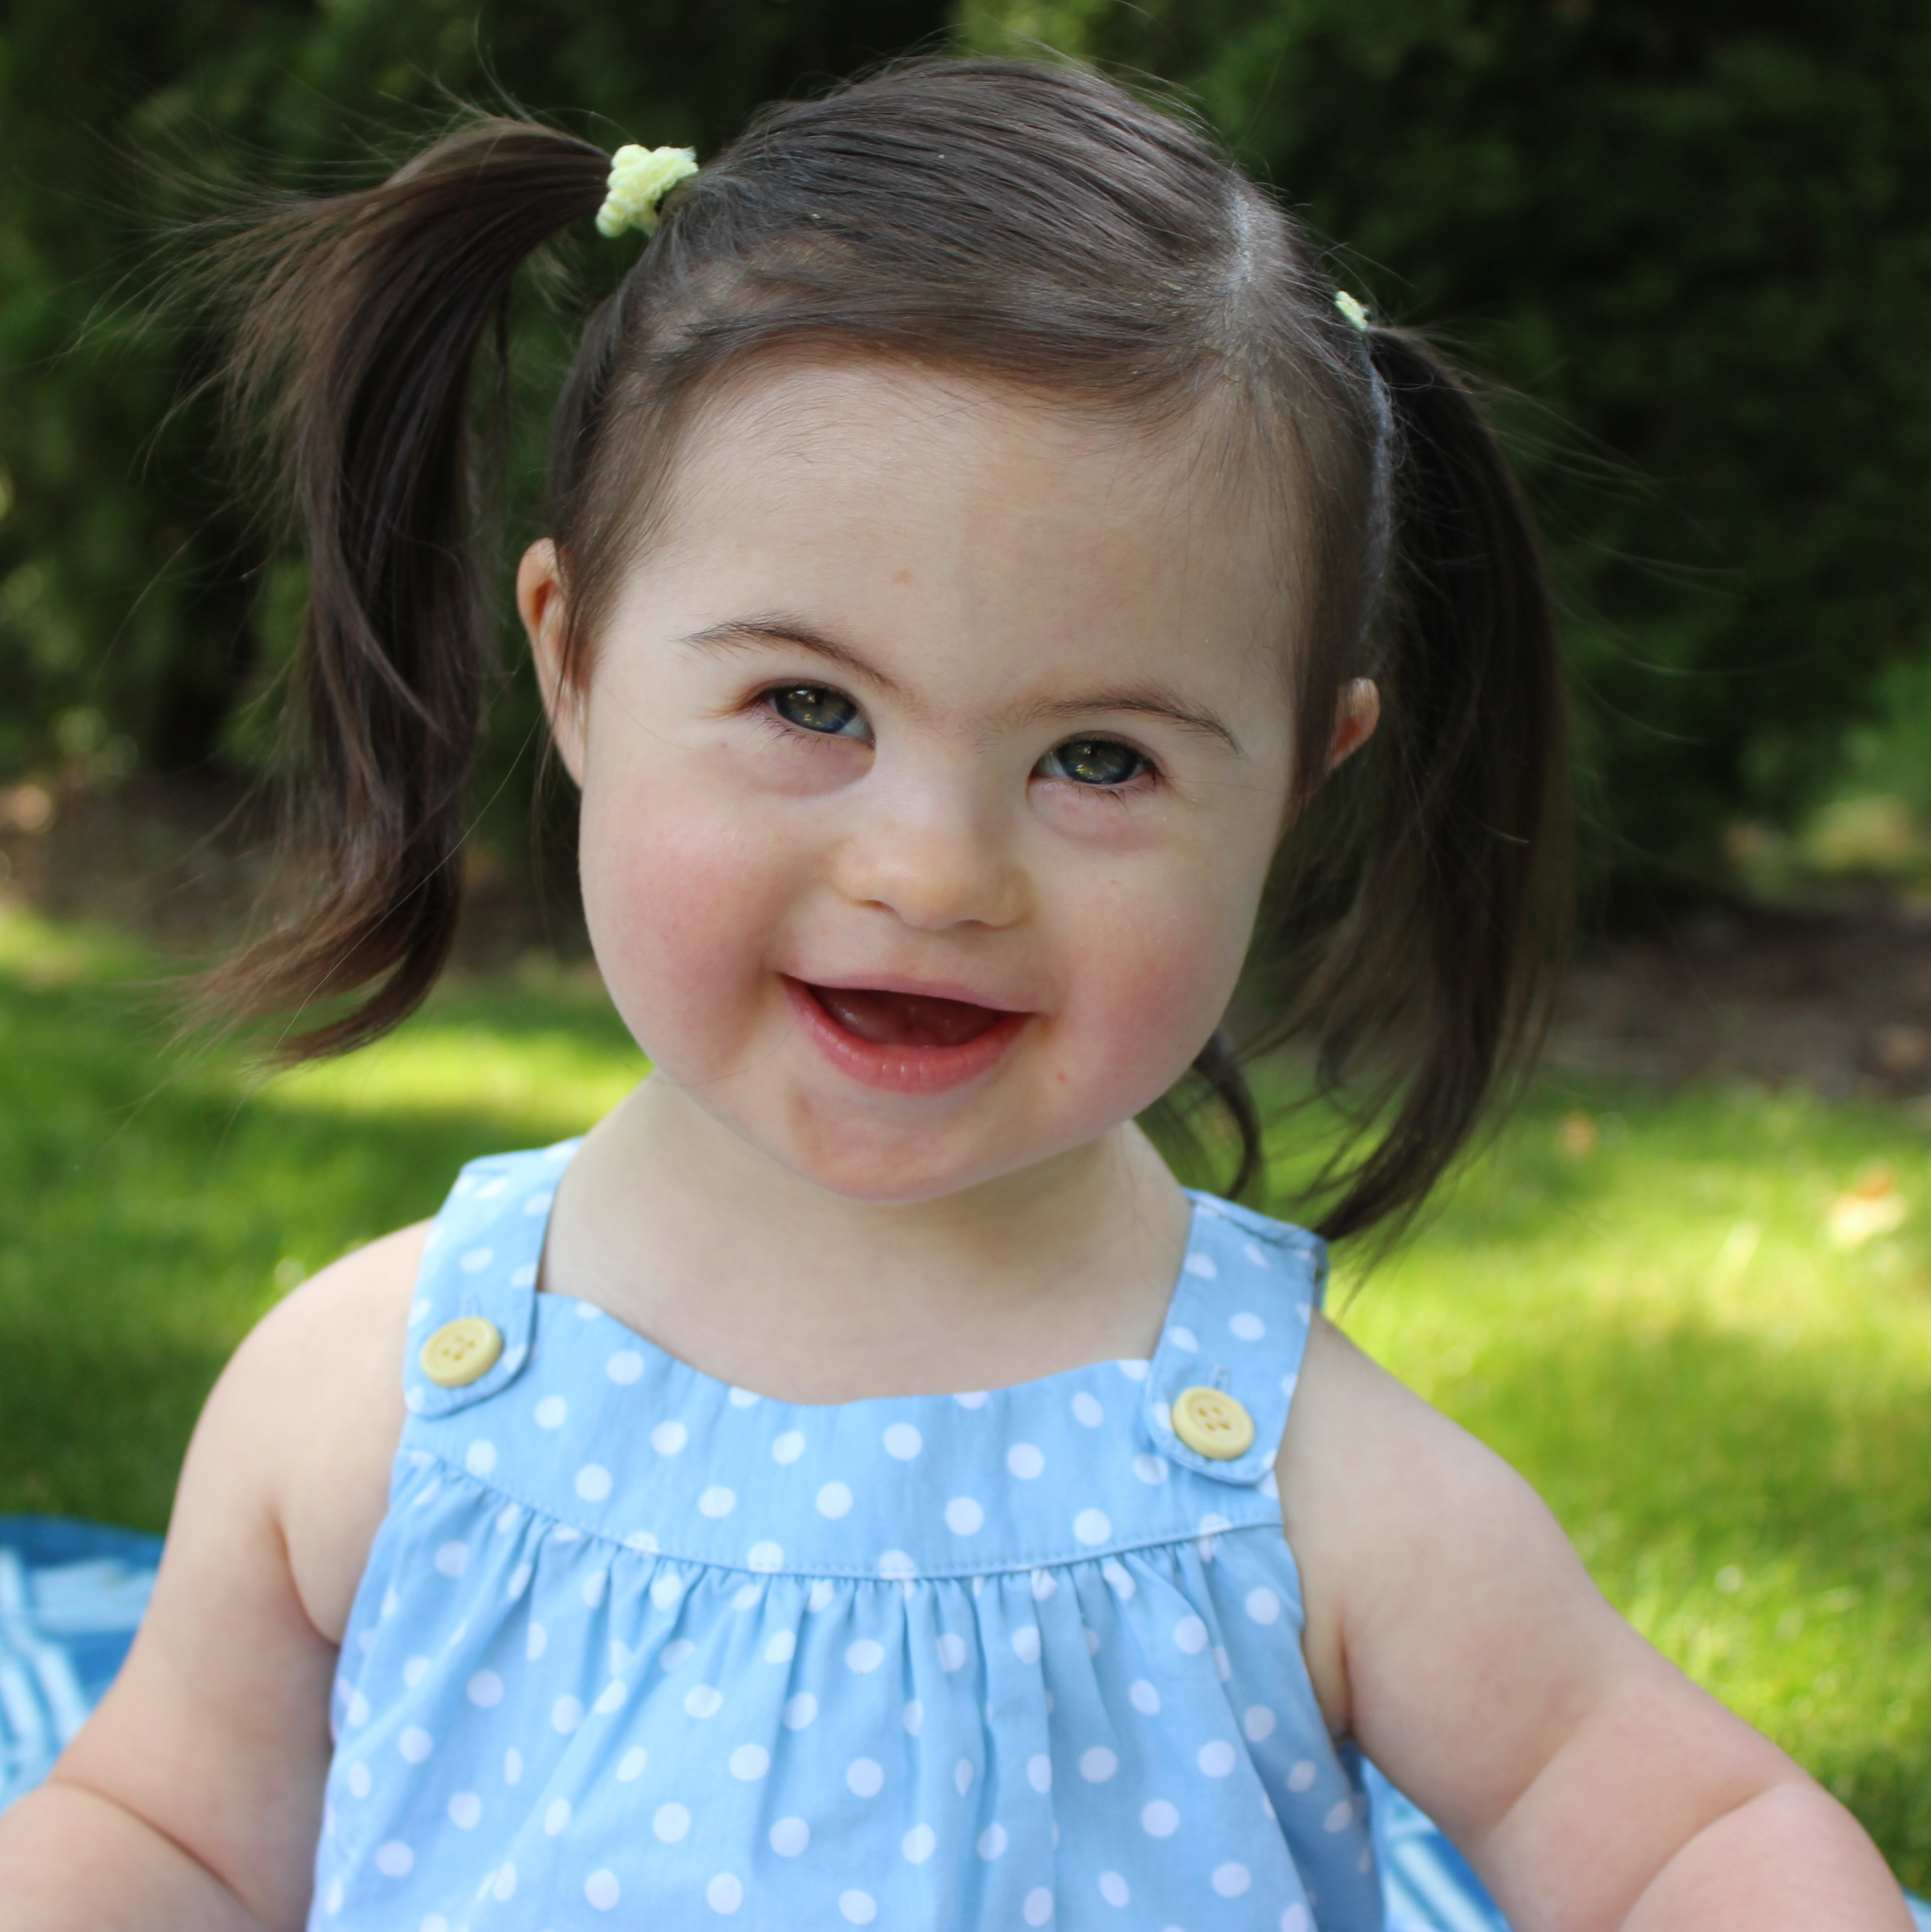 little girl with down syndrome